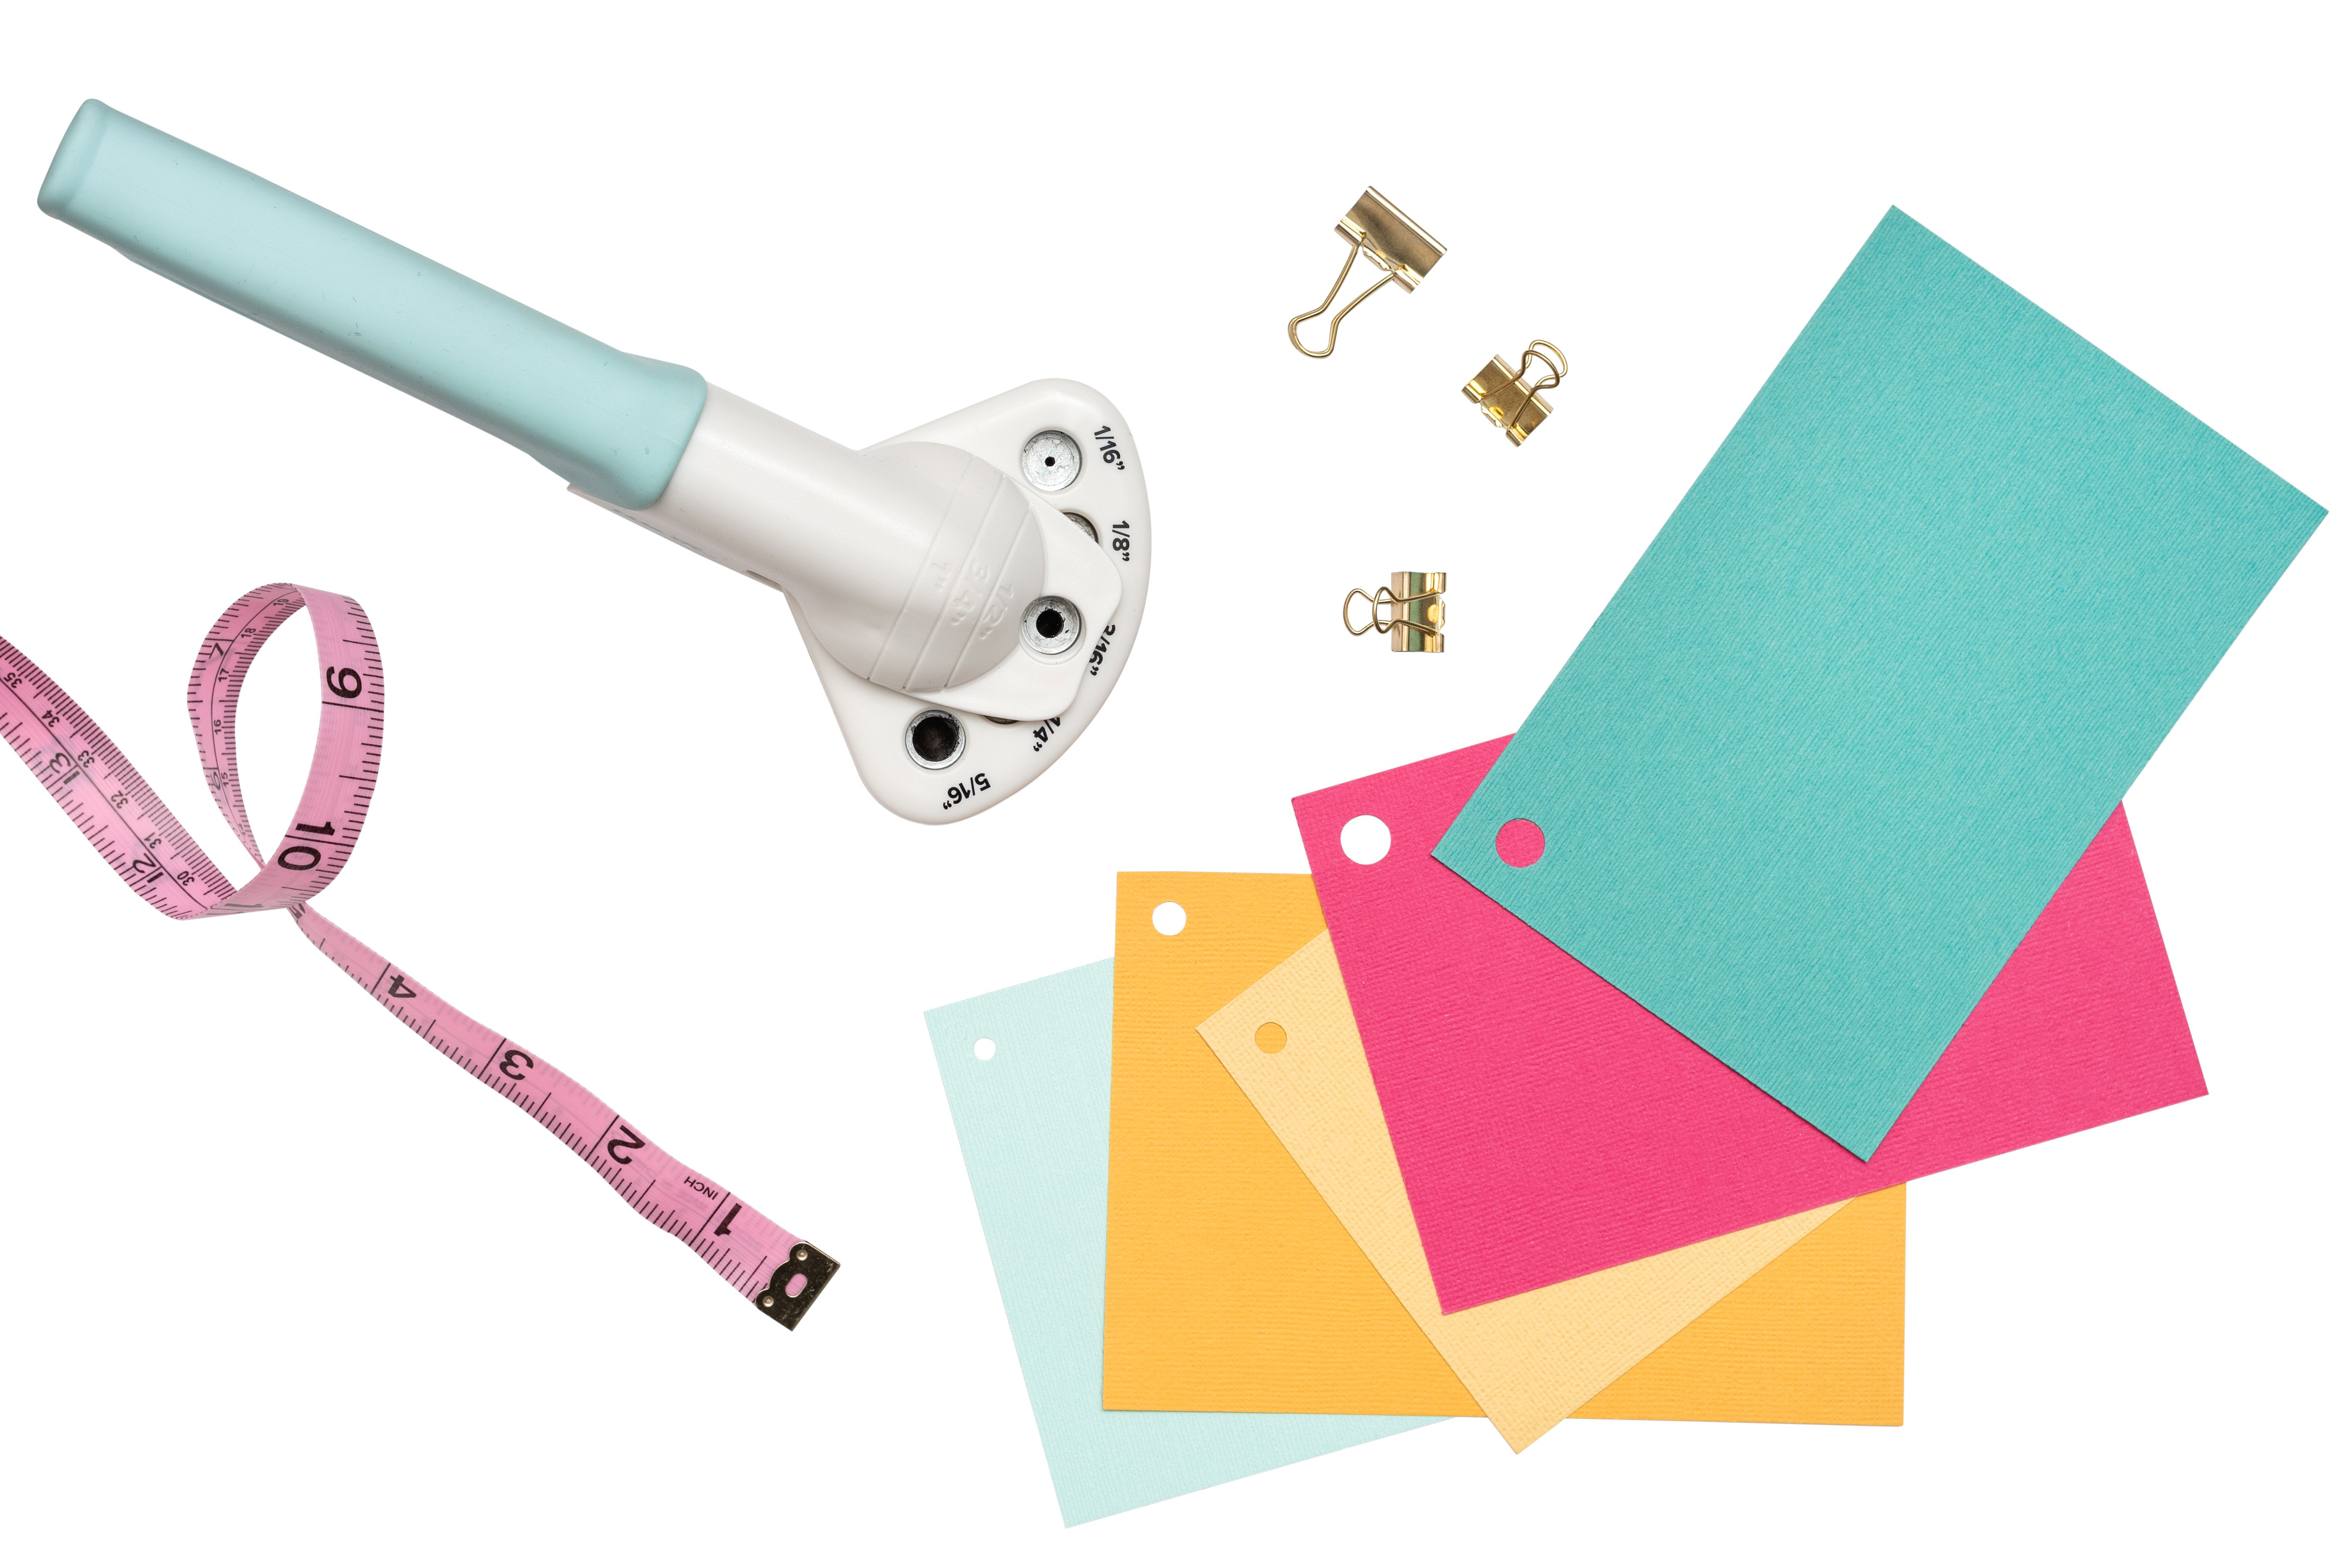 19++ Craft hole punch kmart ideas in 2021